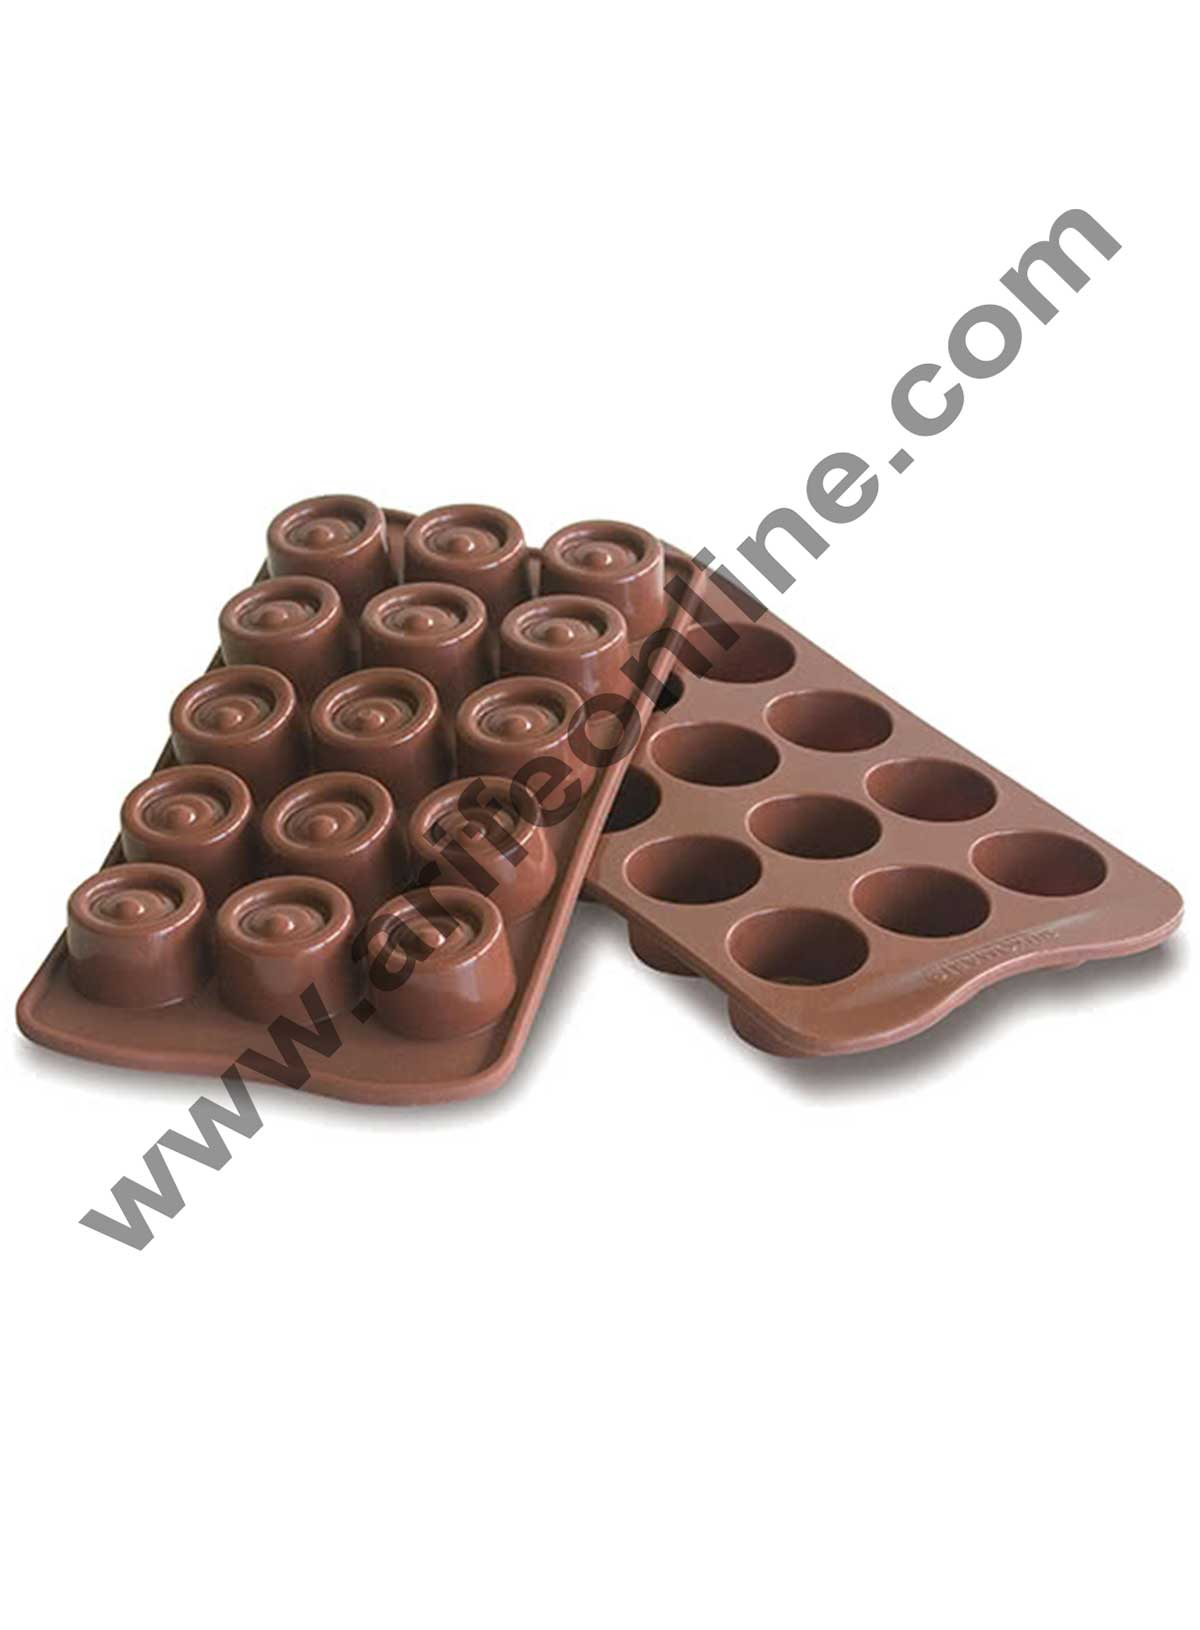 Cake Decor Silicon 15 Cavity Round Crical Brown Chocolate Mould, Ice Mould, Chocolate Decorating Mould